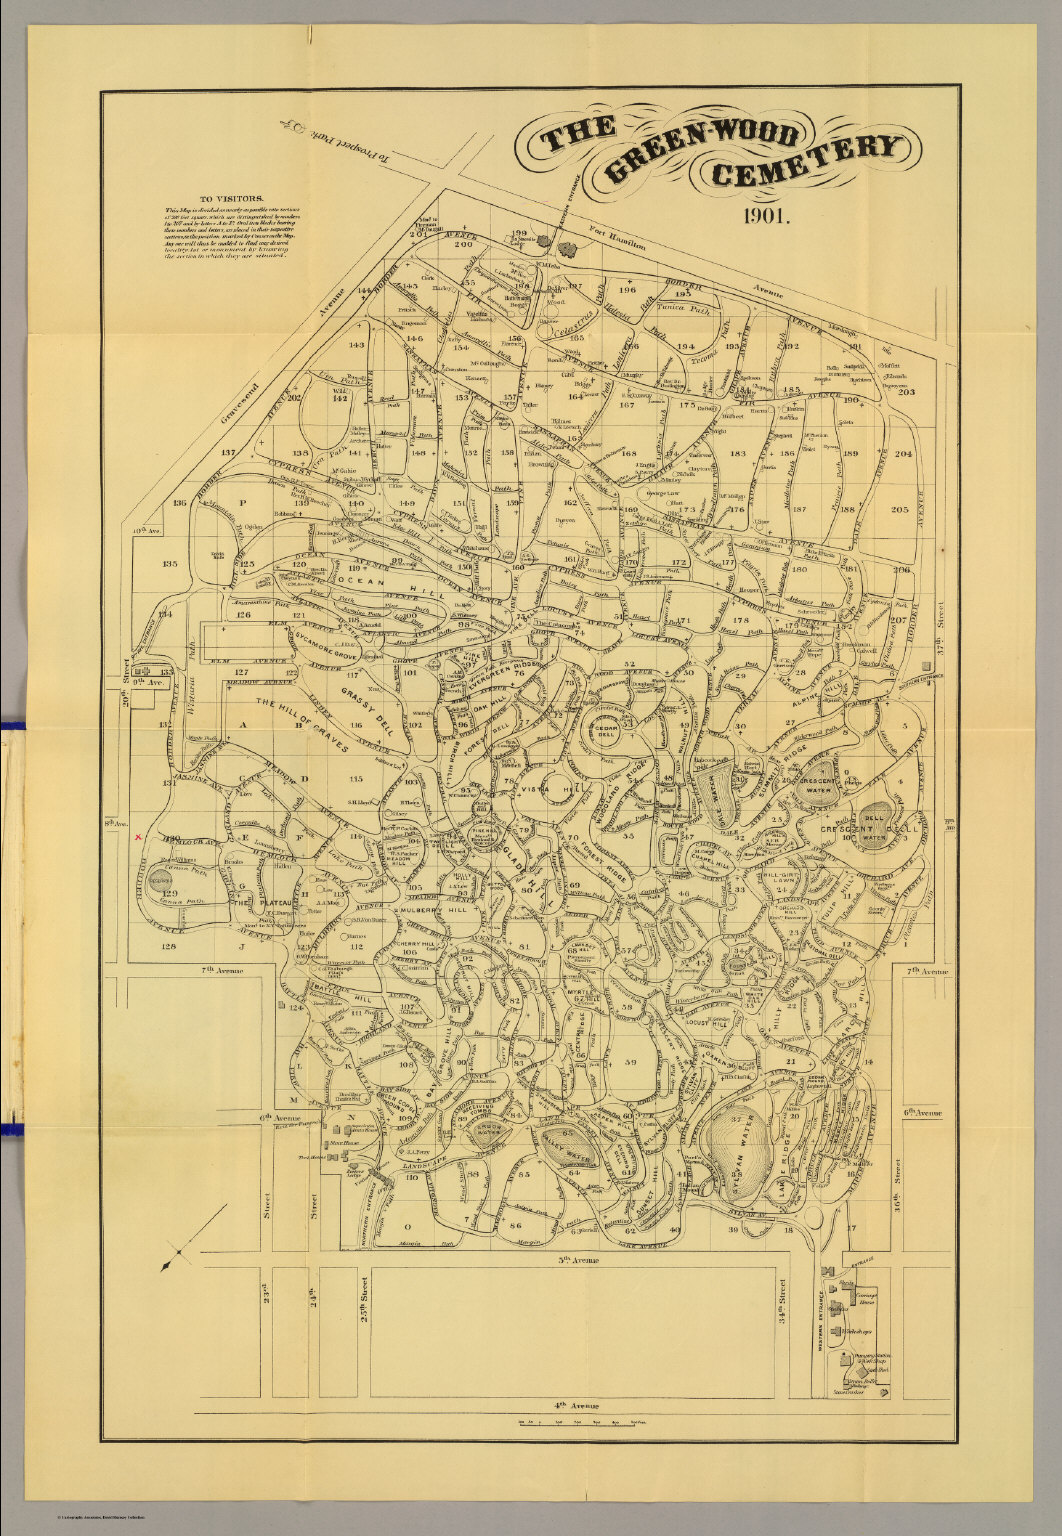 greenwood cemetery  david rumsey historical map collection - greenwood cemetery